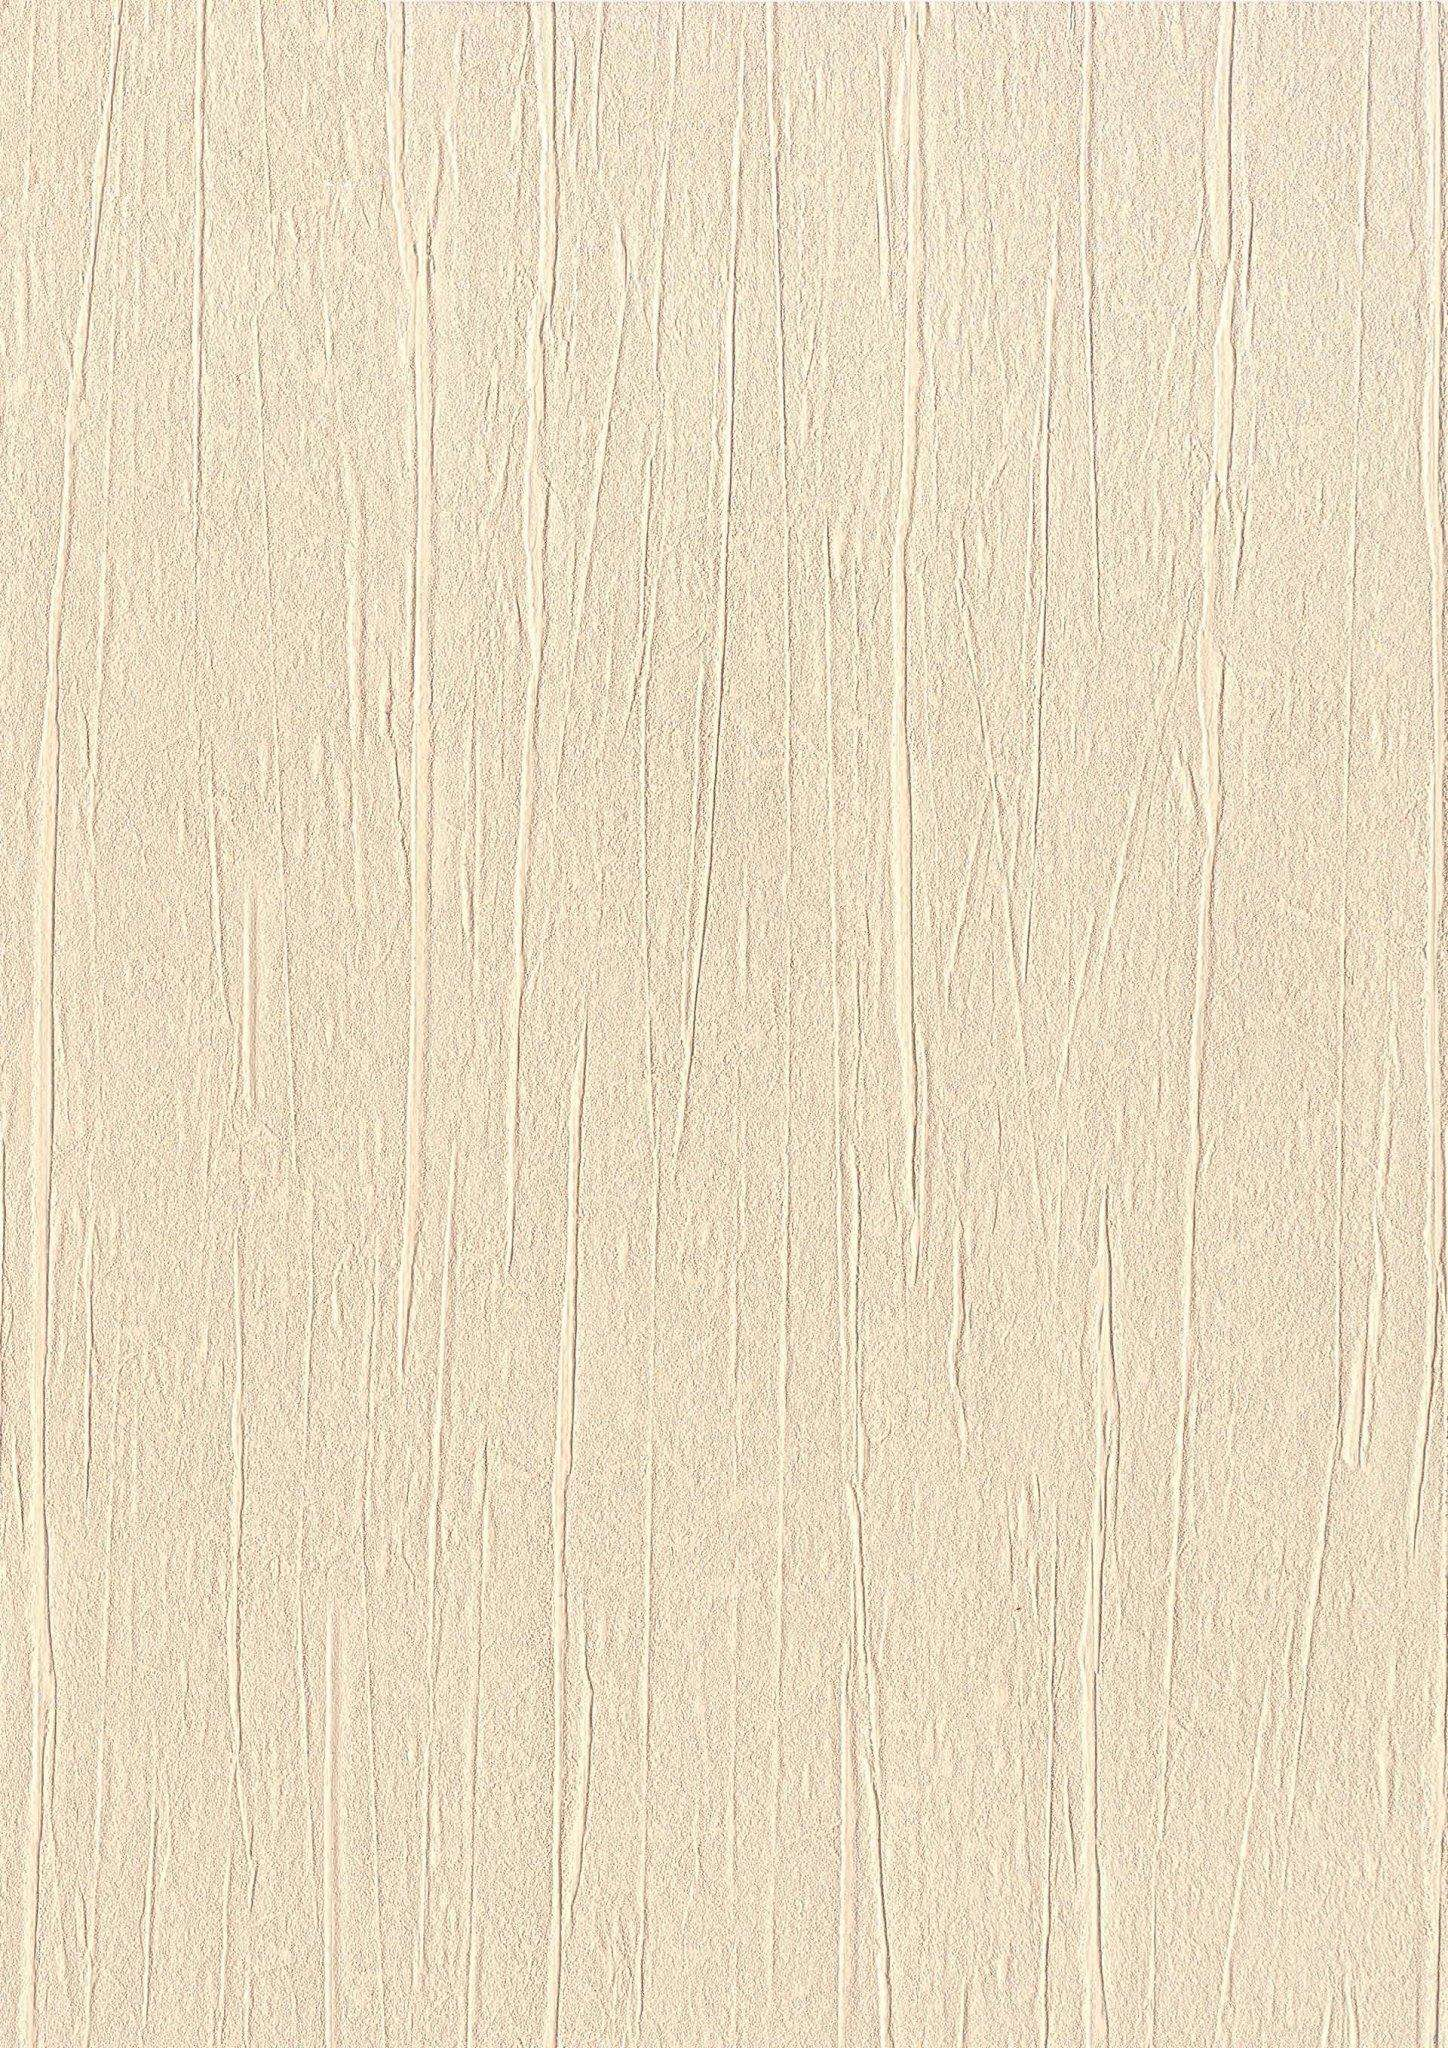 Muraspec Atlanta Talis Wallcovering 01C43